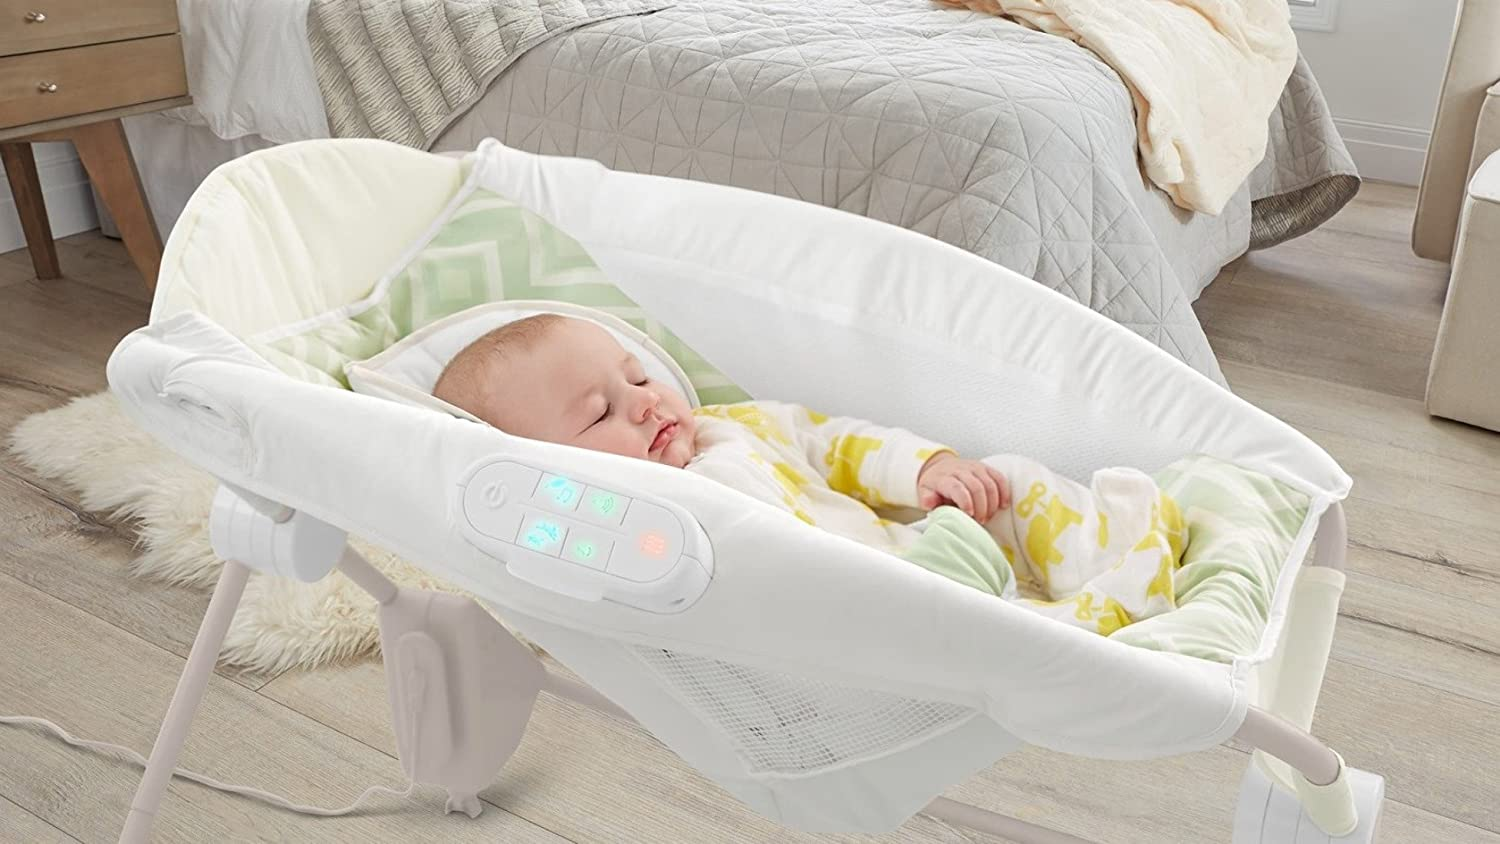 Baby bed that connects to parents bed - Amazon Com Fisher Price Deluxe Auto Rock N Play Sleeper With Smart Connect Baby